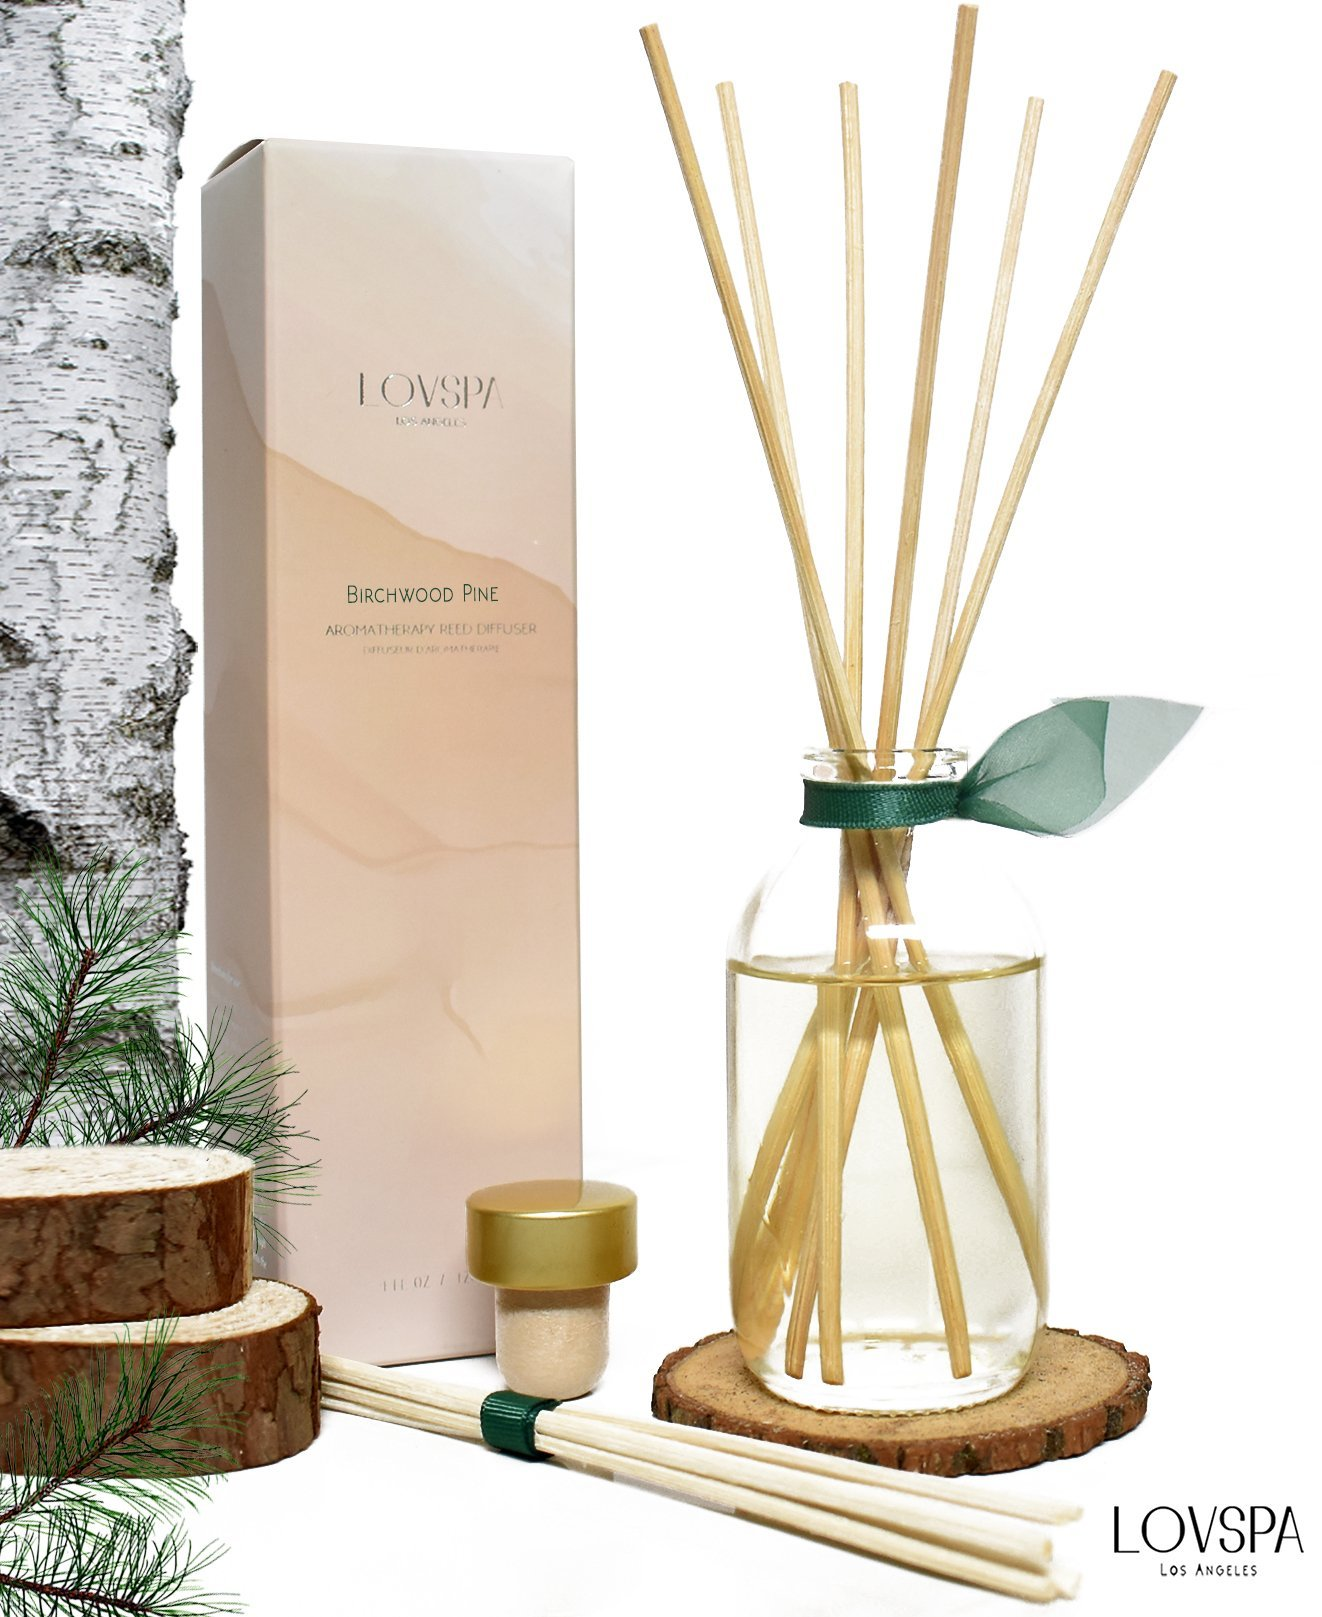 LOVSPA Birchwood Pine Reed Diffuser Set by with Wood Slice Coaster | White Pine, Fir Balsam, Birchwood & Amber Fragrance Notes | Woodsy Rustic Decor w/Scented Sticks | Great Gift Idea for Men!